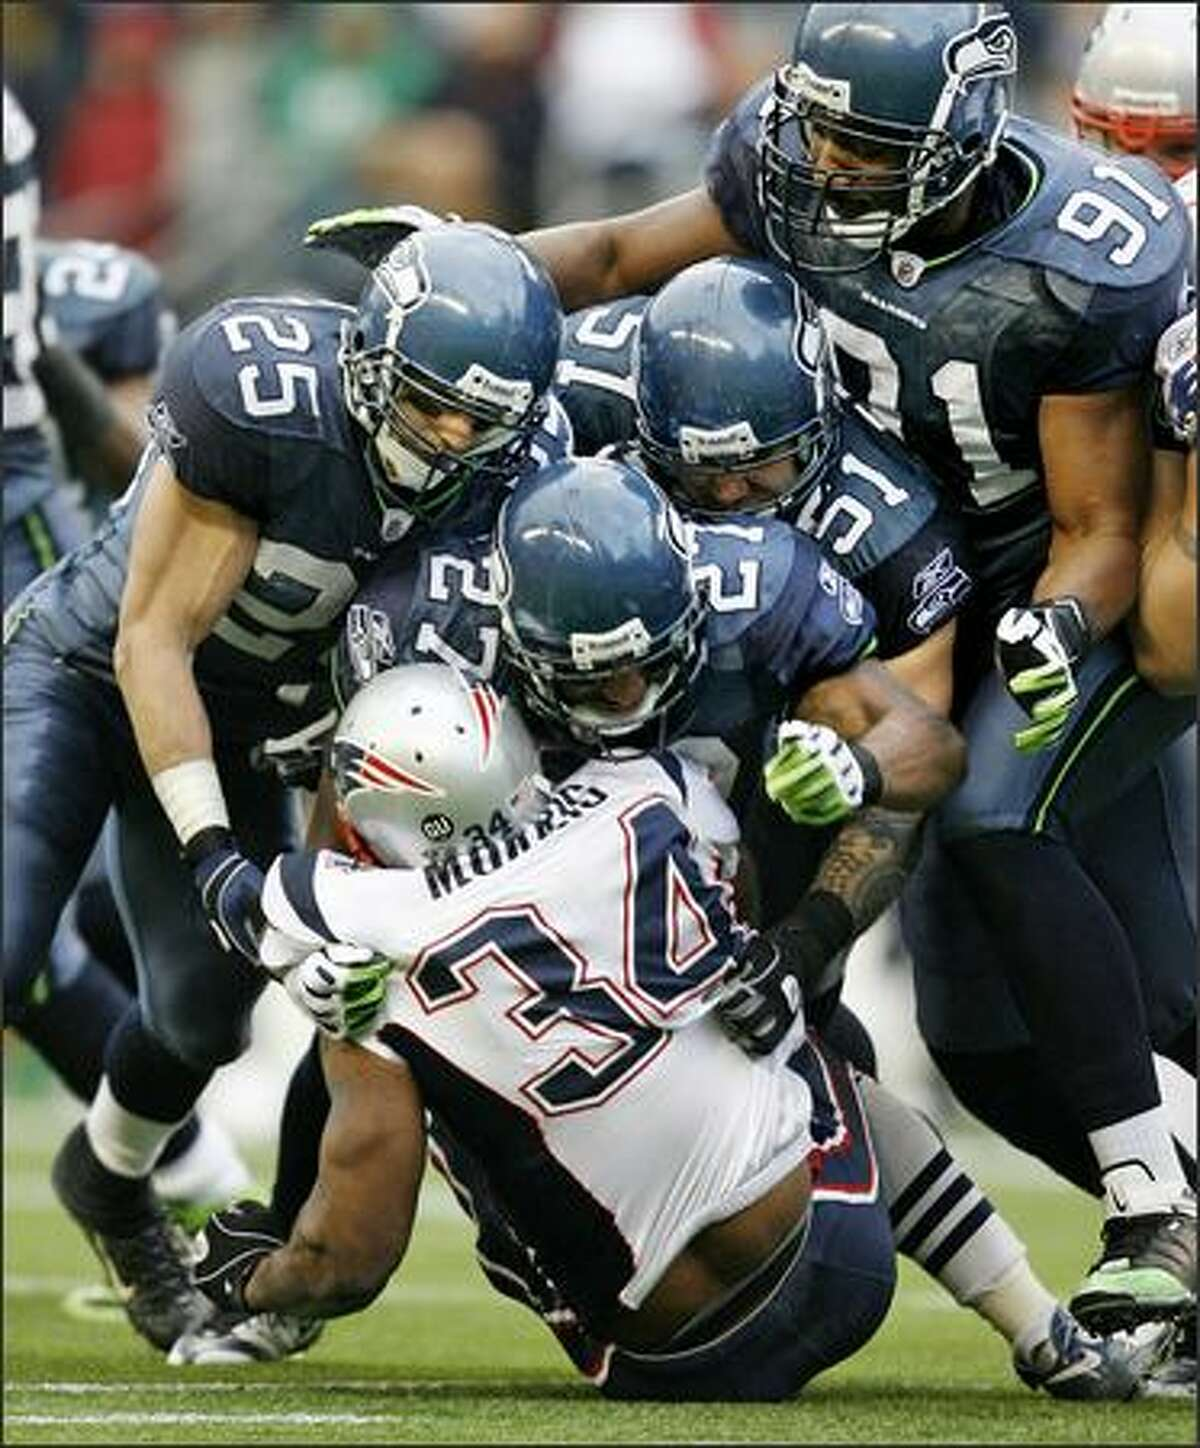 Seahawks safety Jordan Babineaux leads a group of defenders including (from left) Brian Russell, Lofa Tatupu and Baraka Atkins, as they bring down New England Patriots running back Sammy Morris after a short gain at Qwest Field in Seattle on Dec. 7.